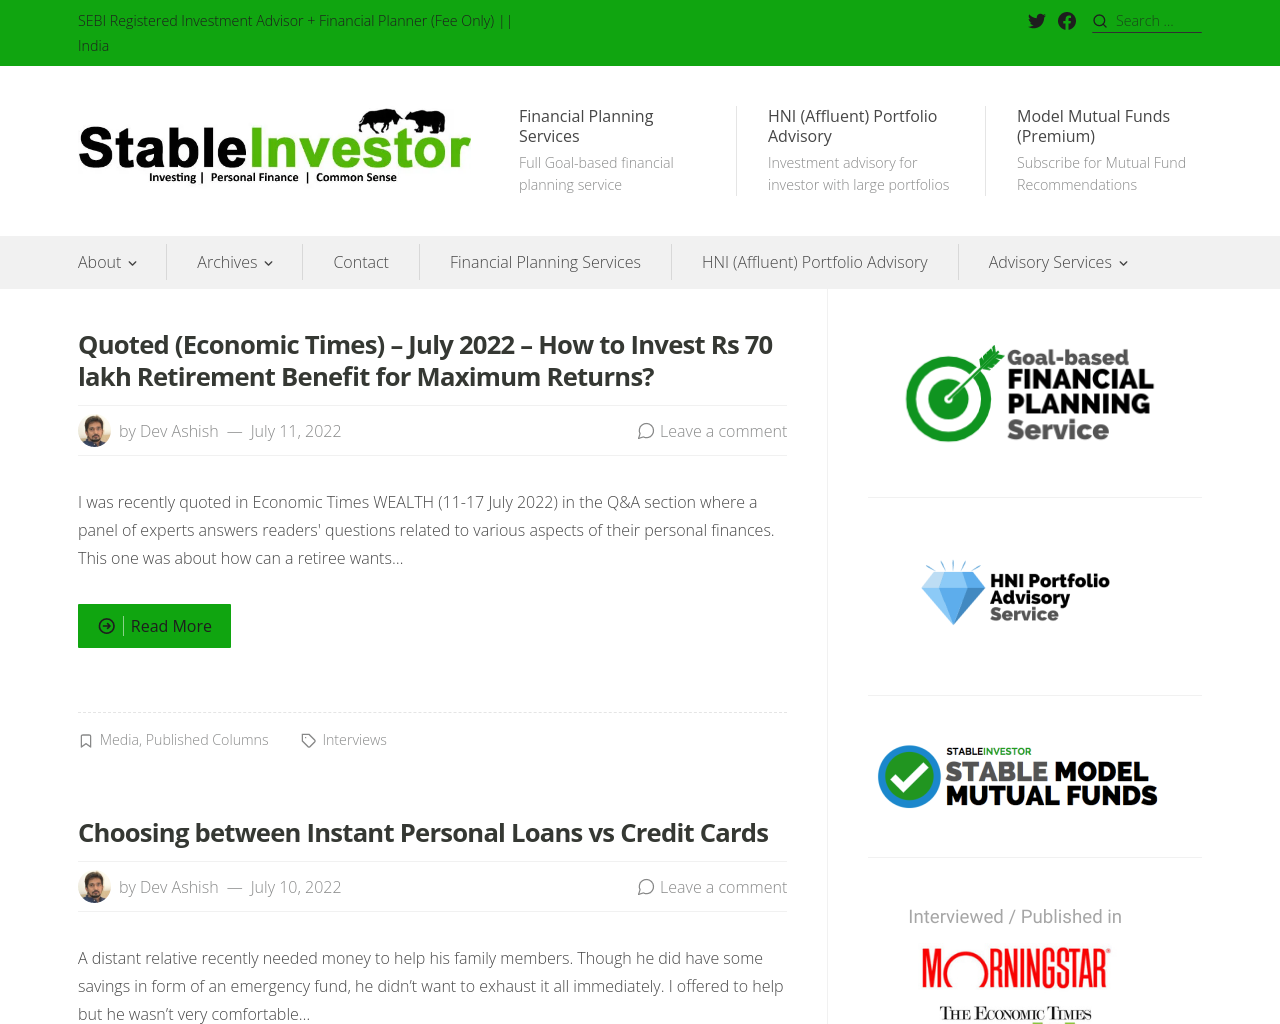 Stable Investor